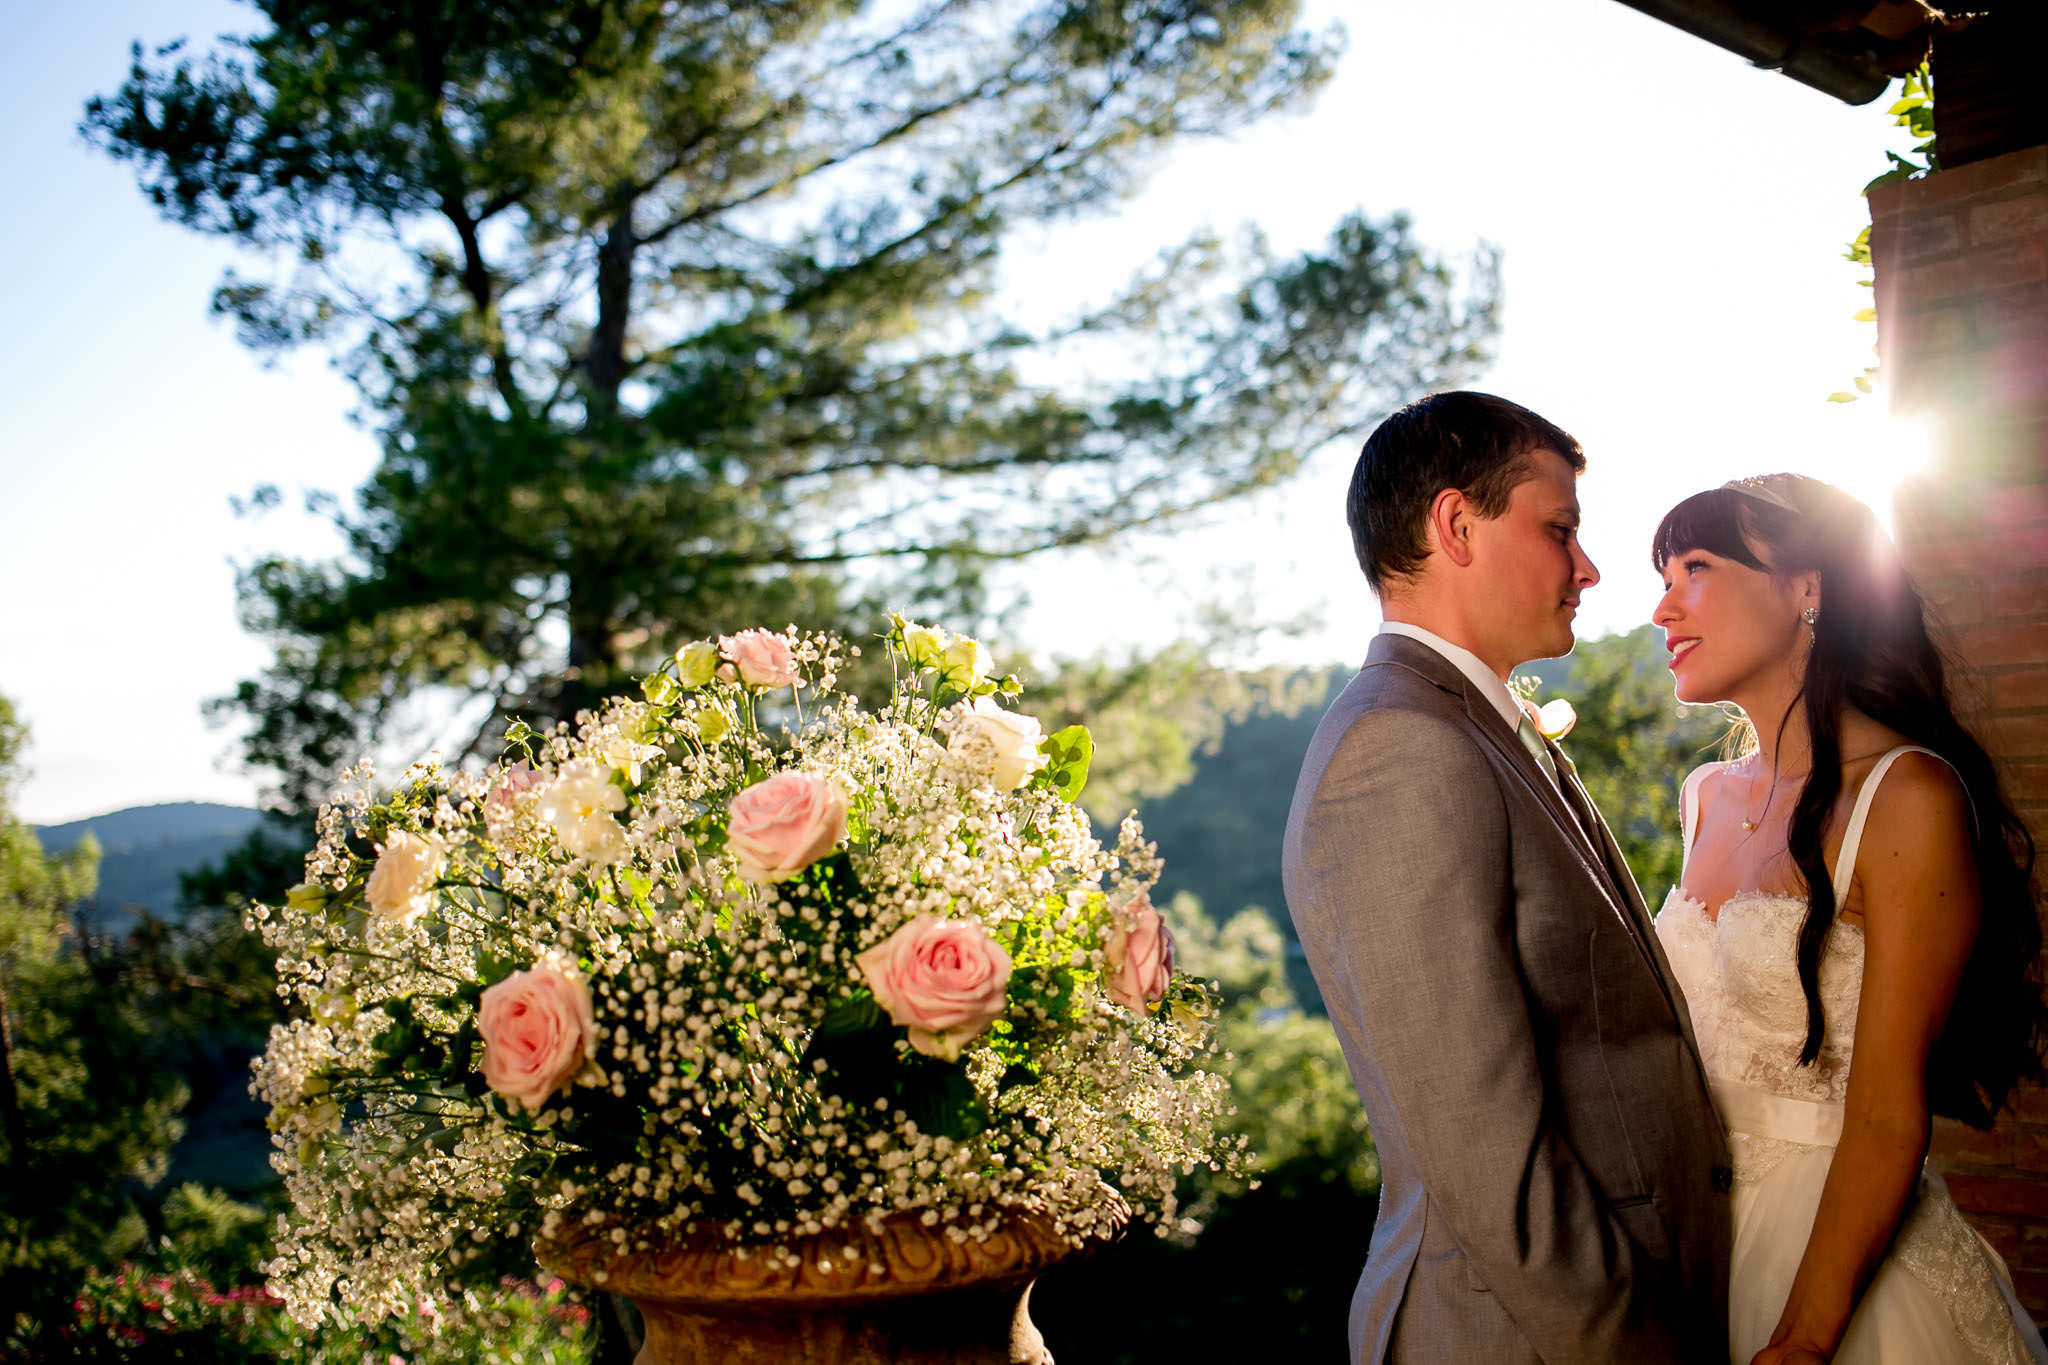 Bride and groom golden hour sunset moment at Villa Tre Grazie in Umbria Italy near Todi